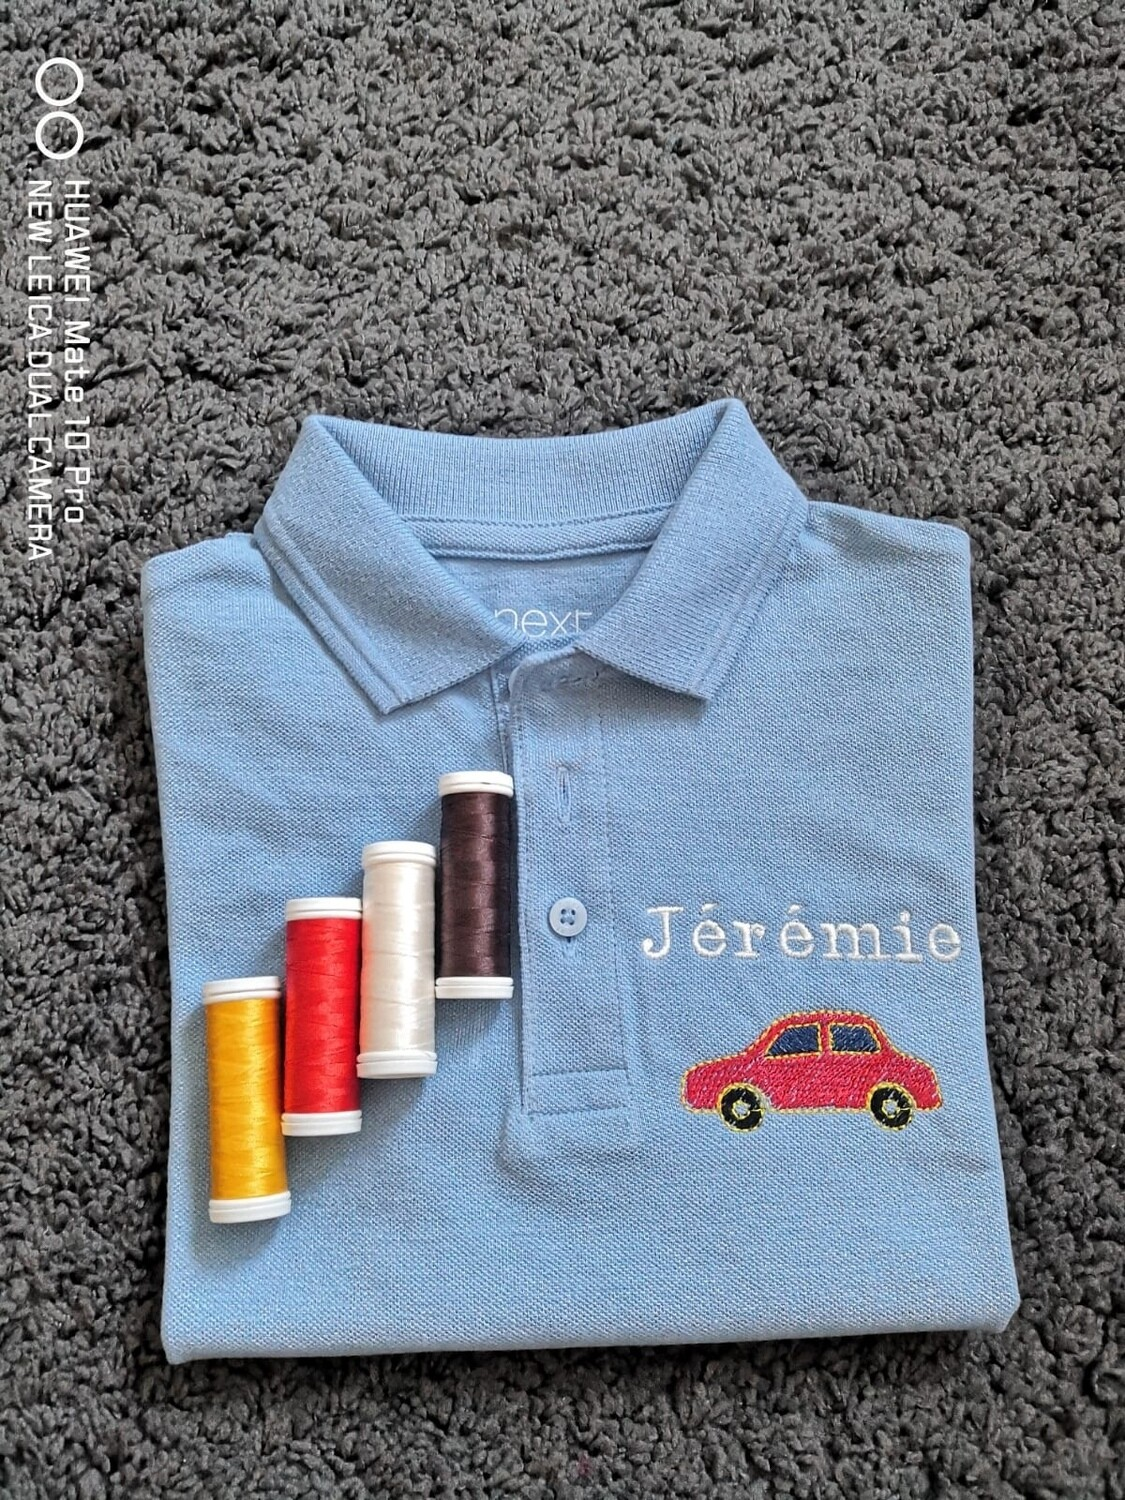 Personalized Embroidered Next Polo Shirts 100% Cotton, Personalized Name , Personalized Text